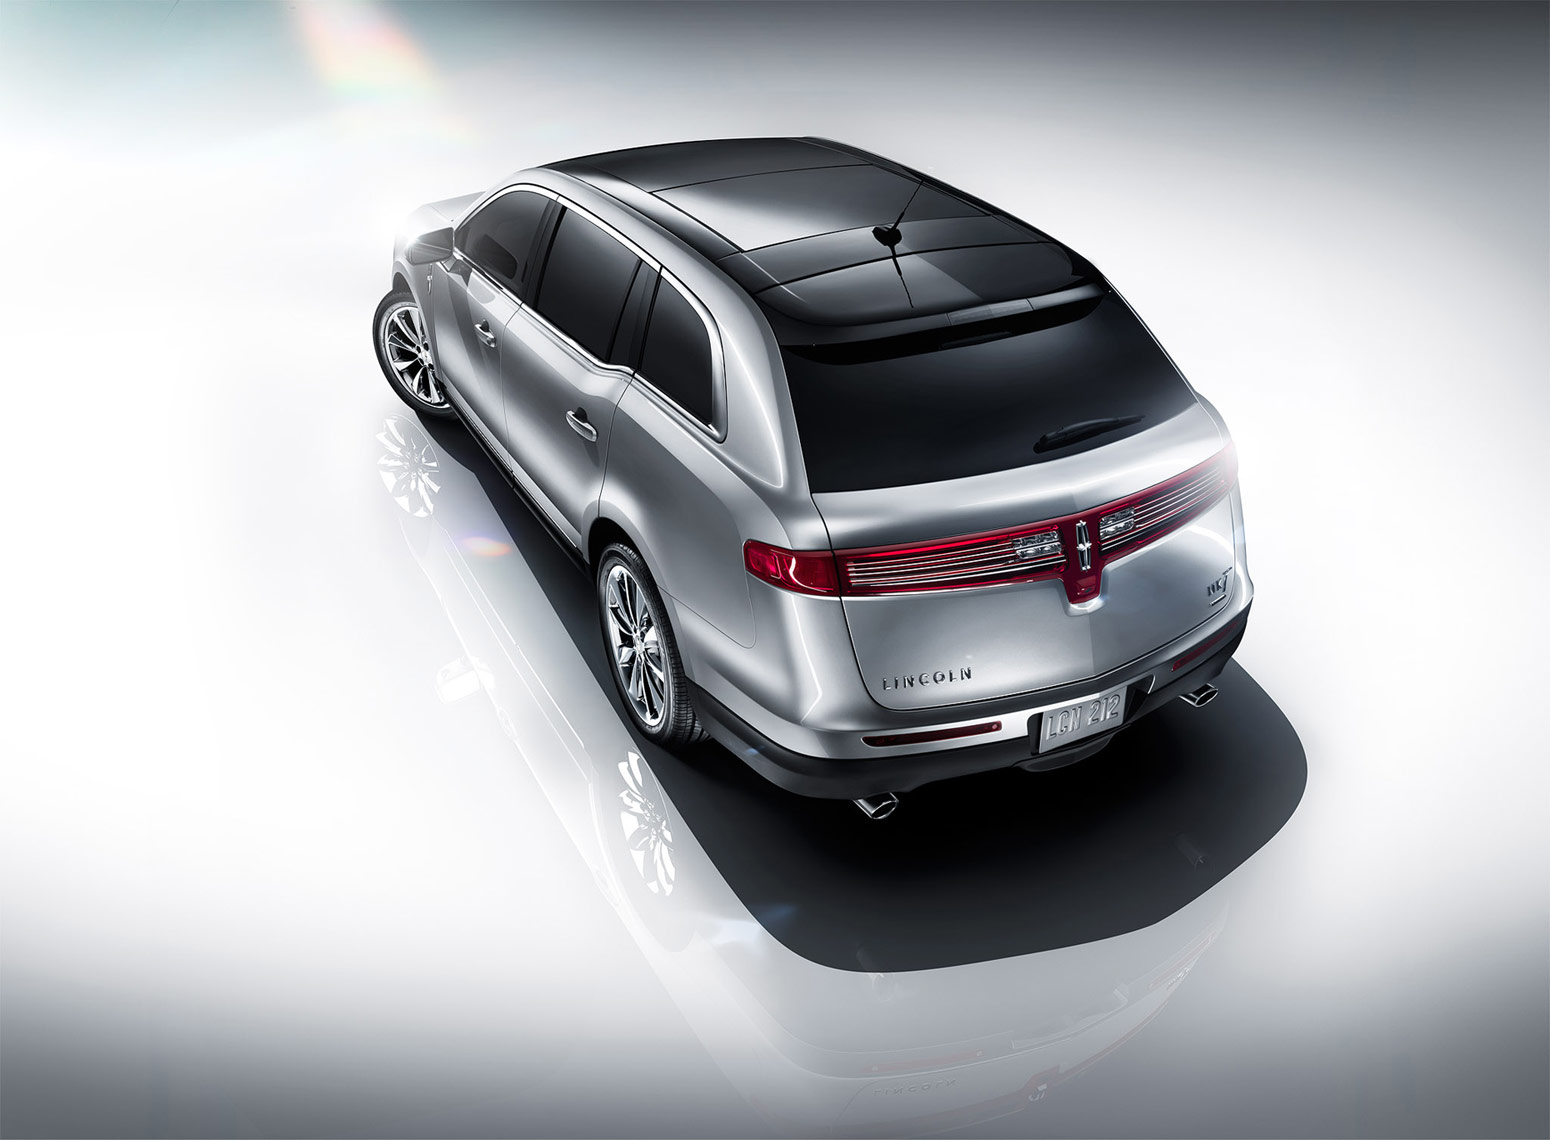 lincoln-mkt-rear-001-stanley.jpg